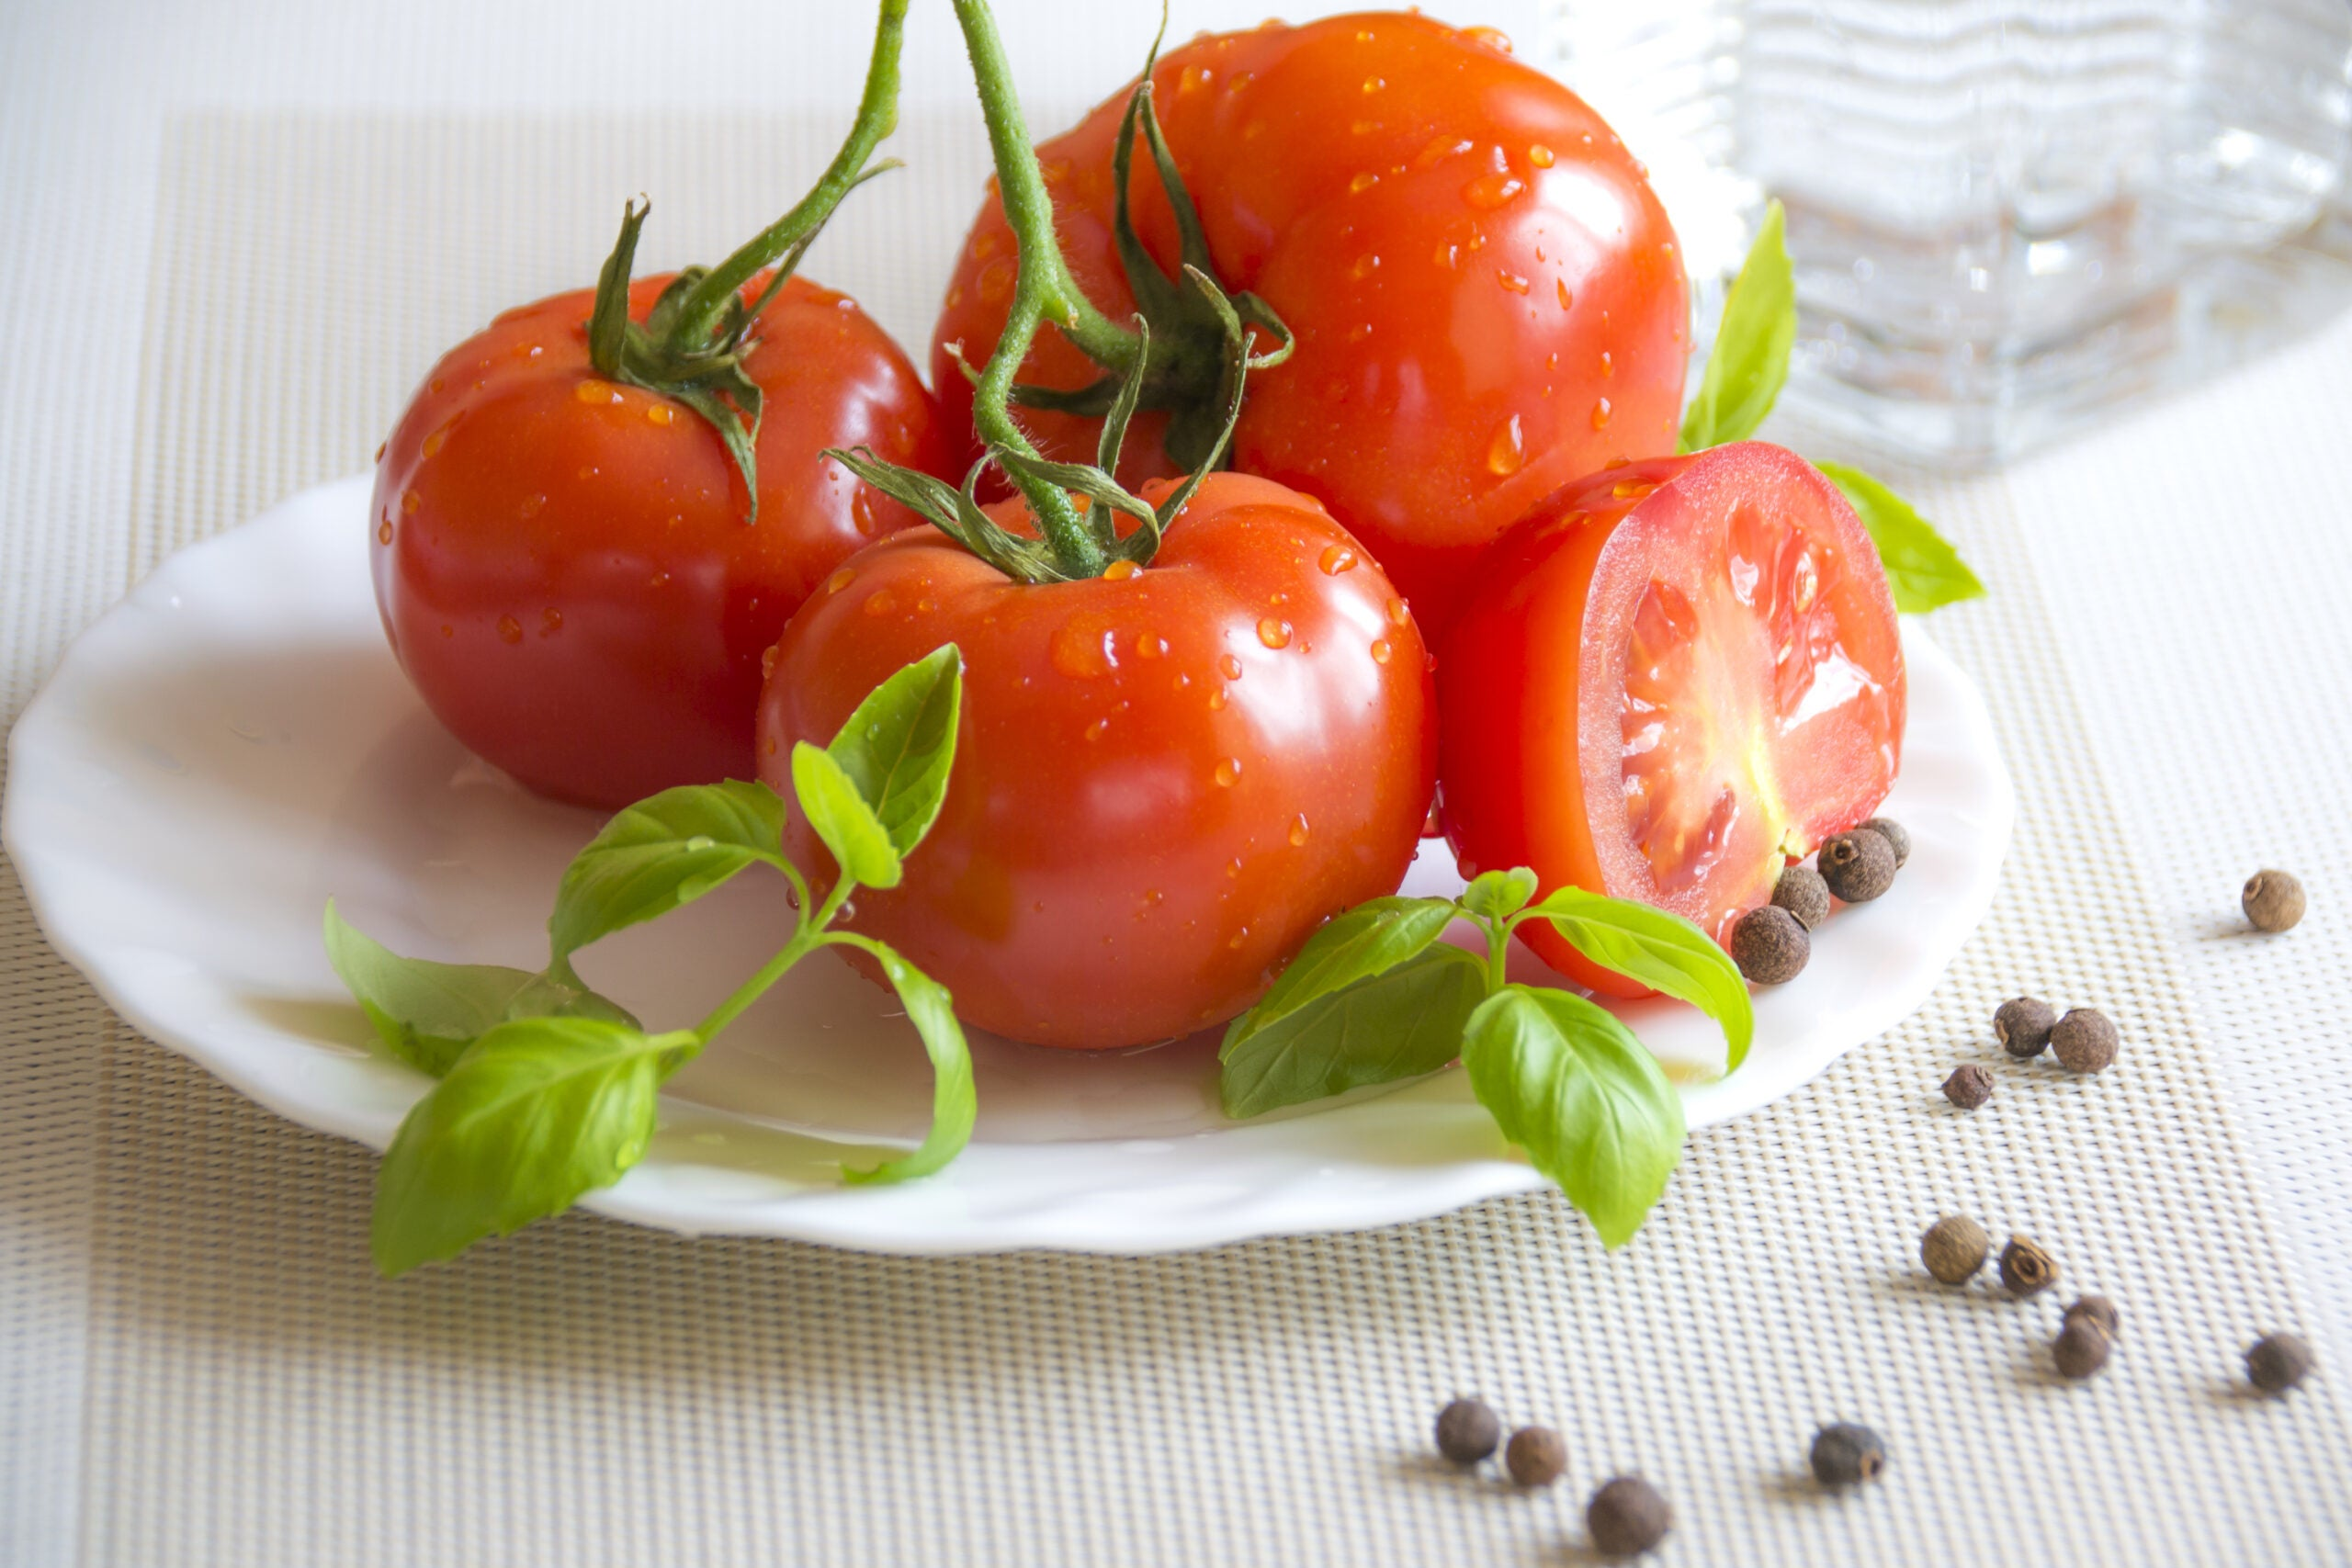 Scientists tweaked natural mutations to create a better tomato